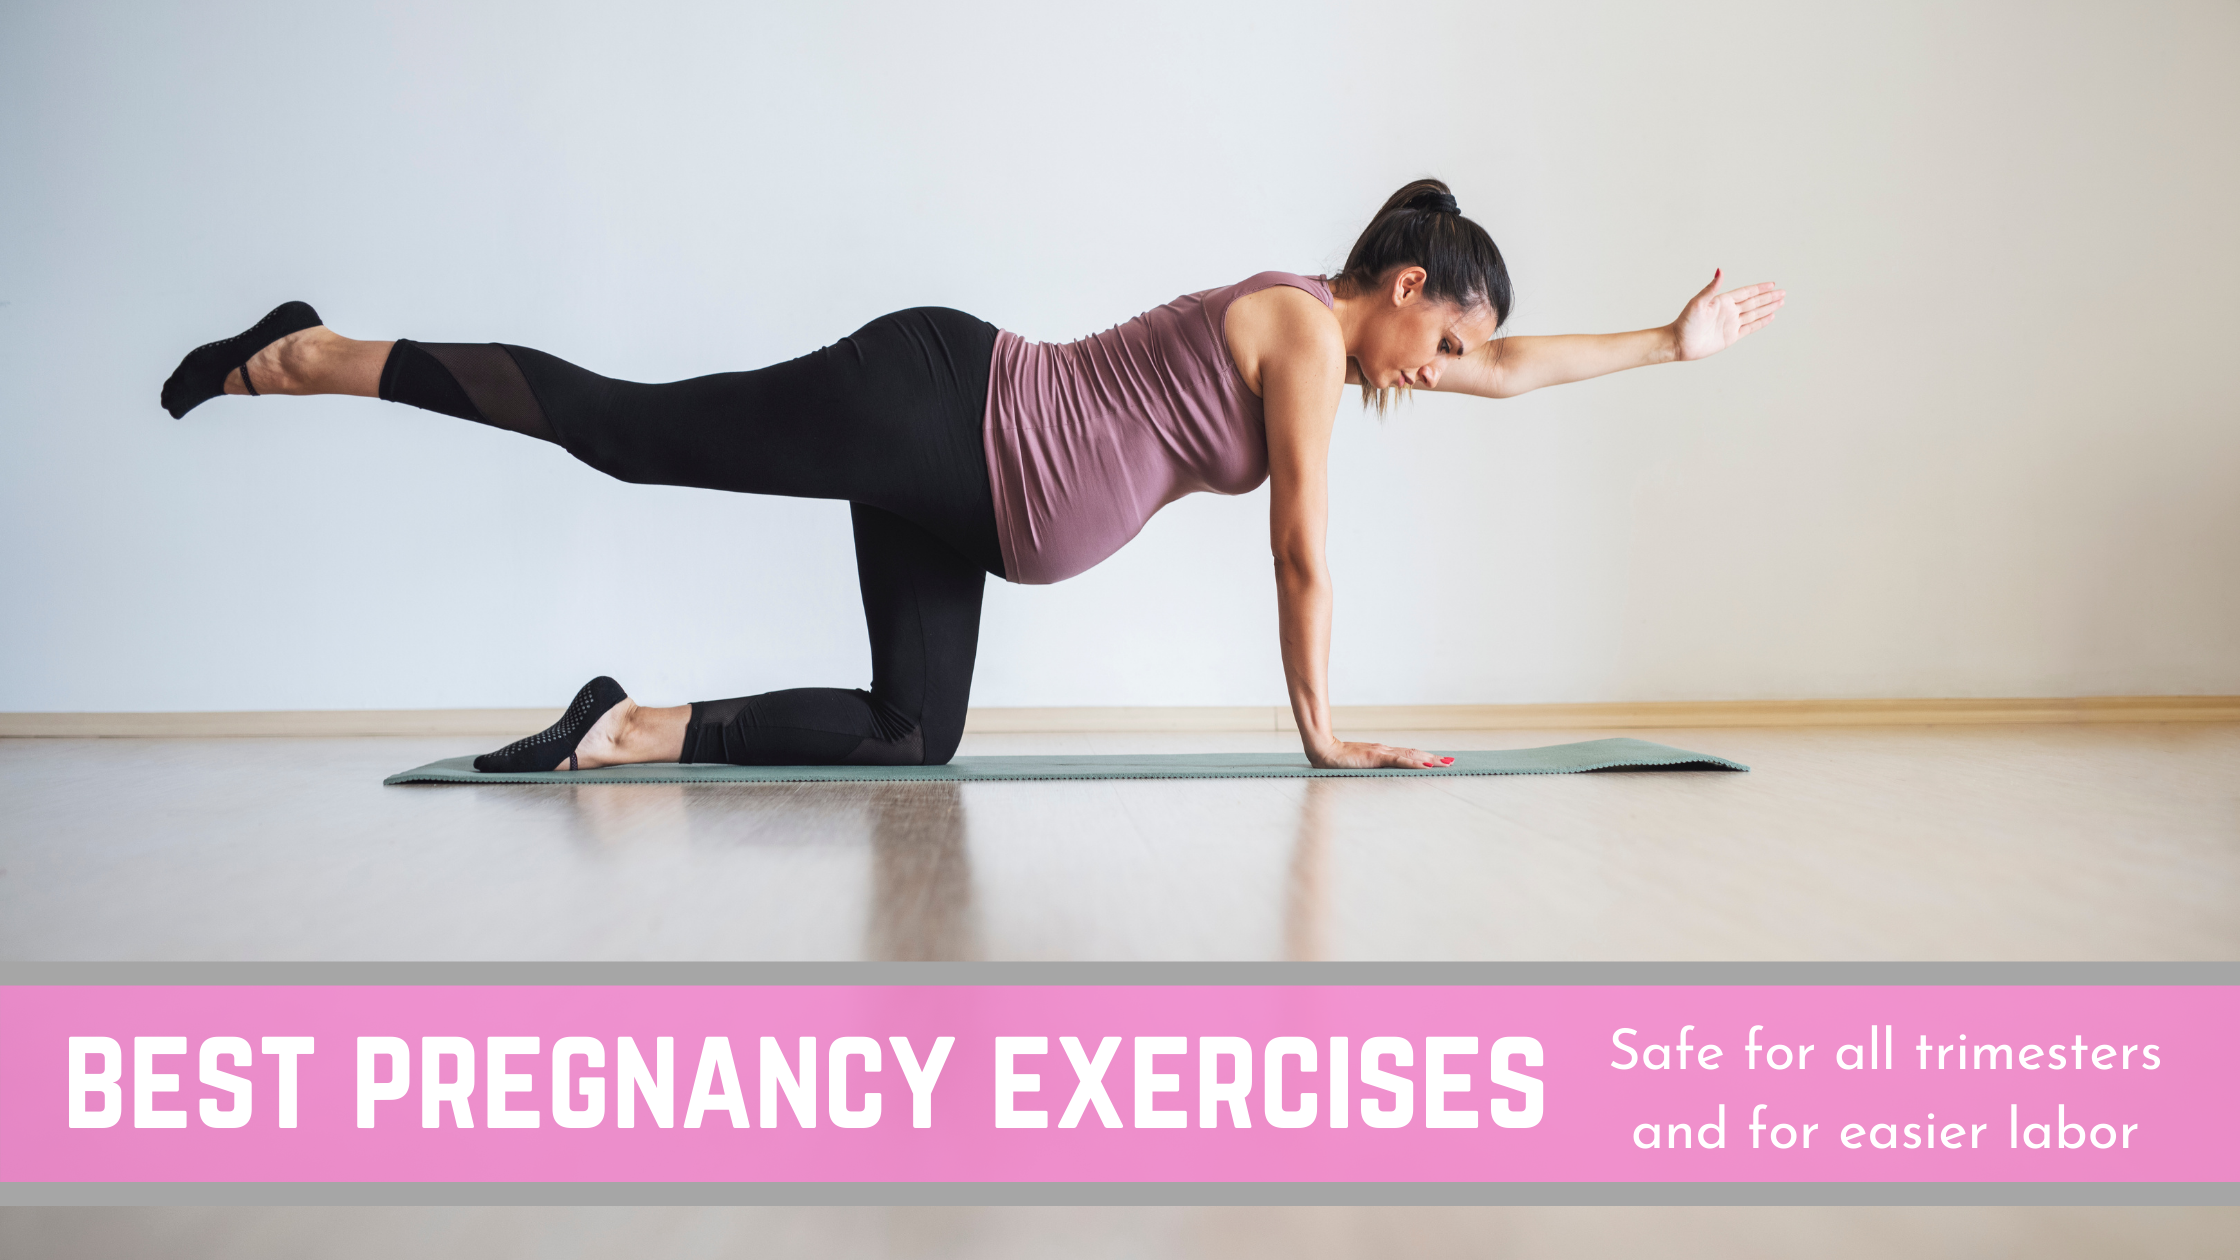 Best Pregnancy & Antenatal Exercises safe for all Trimesters (and for easier labor!)